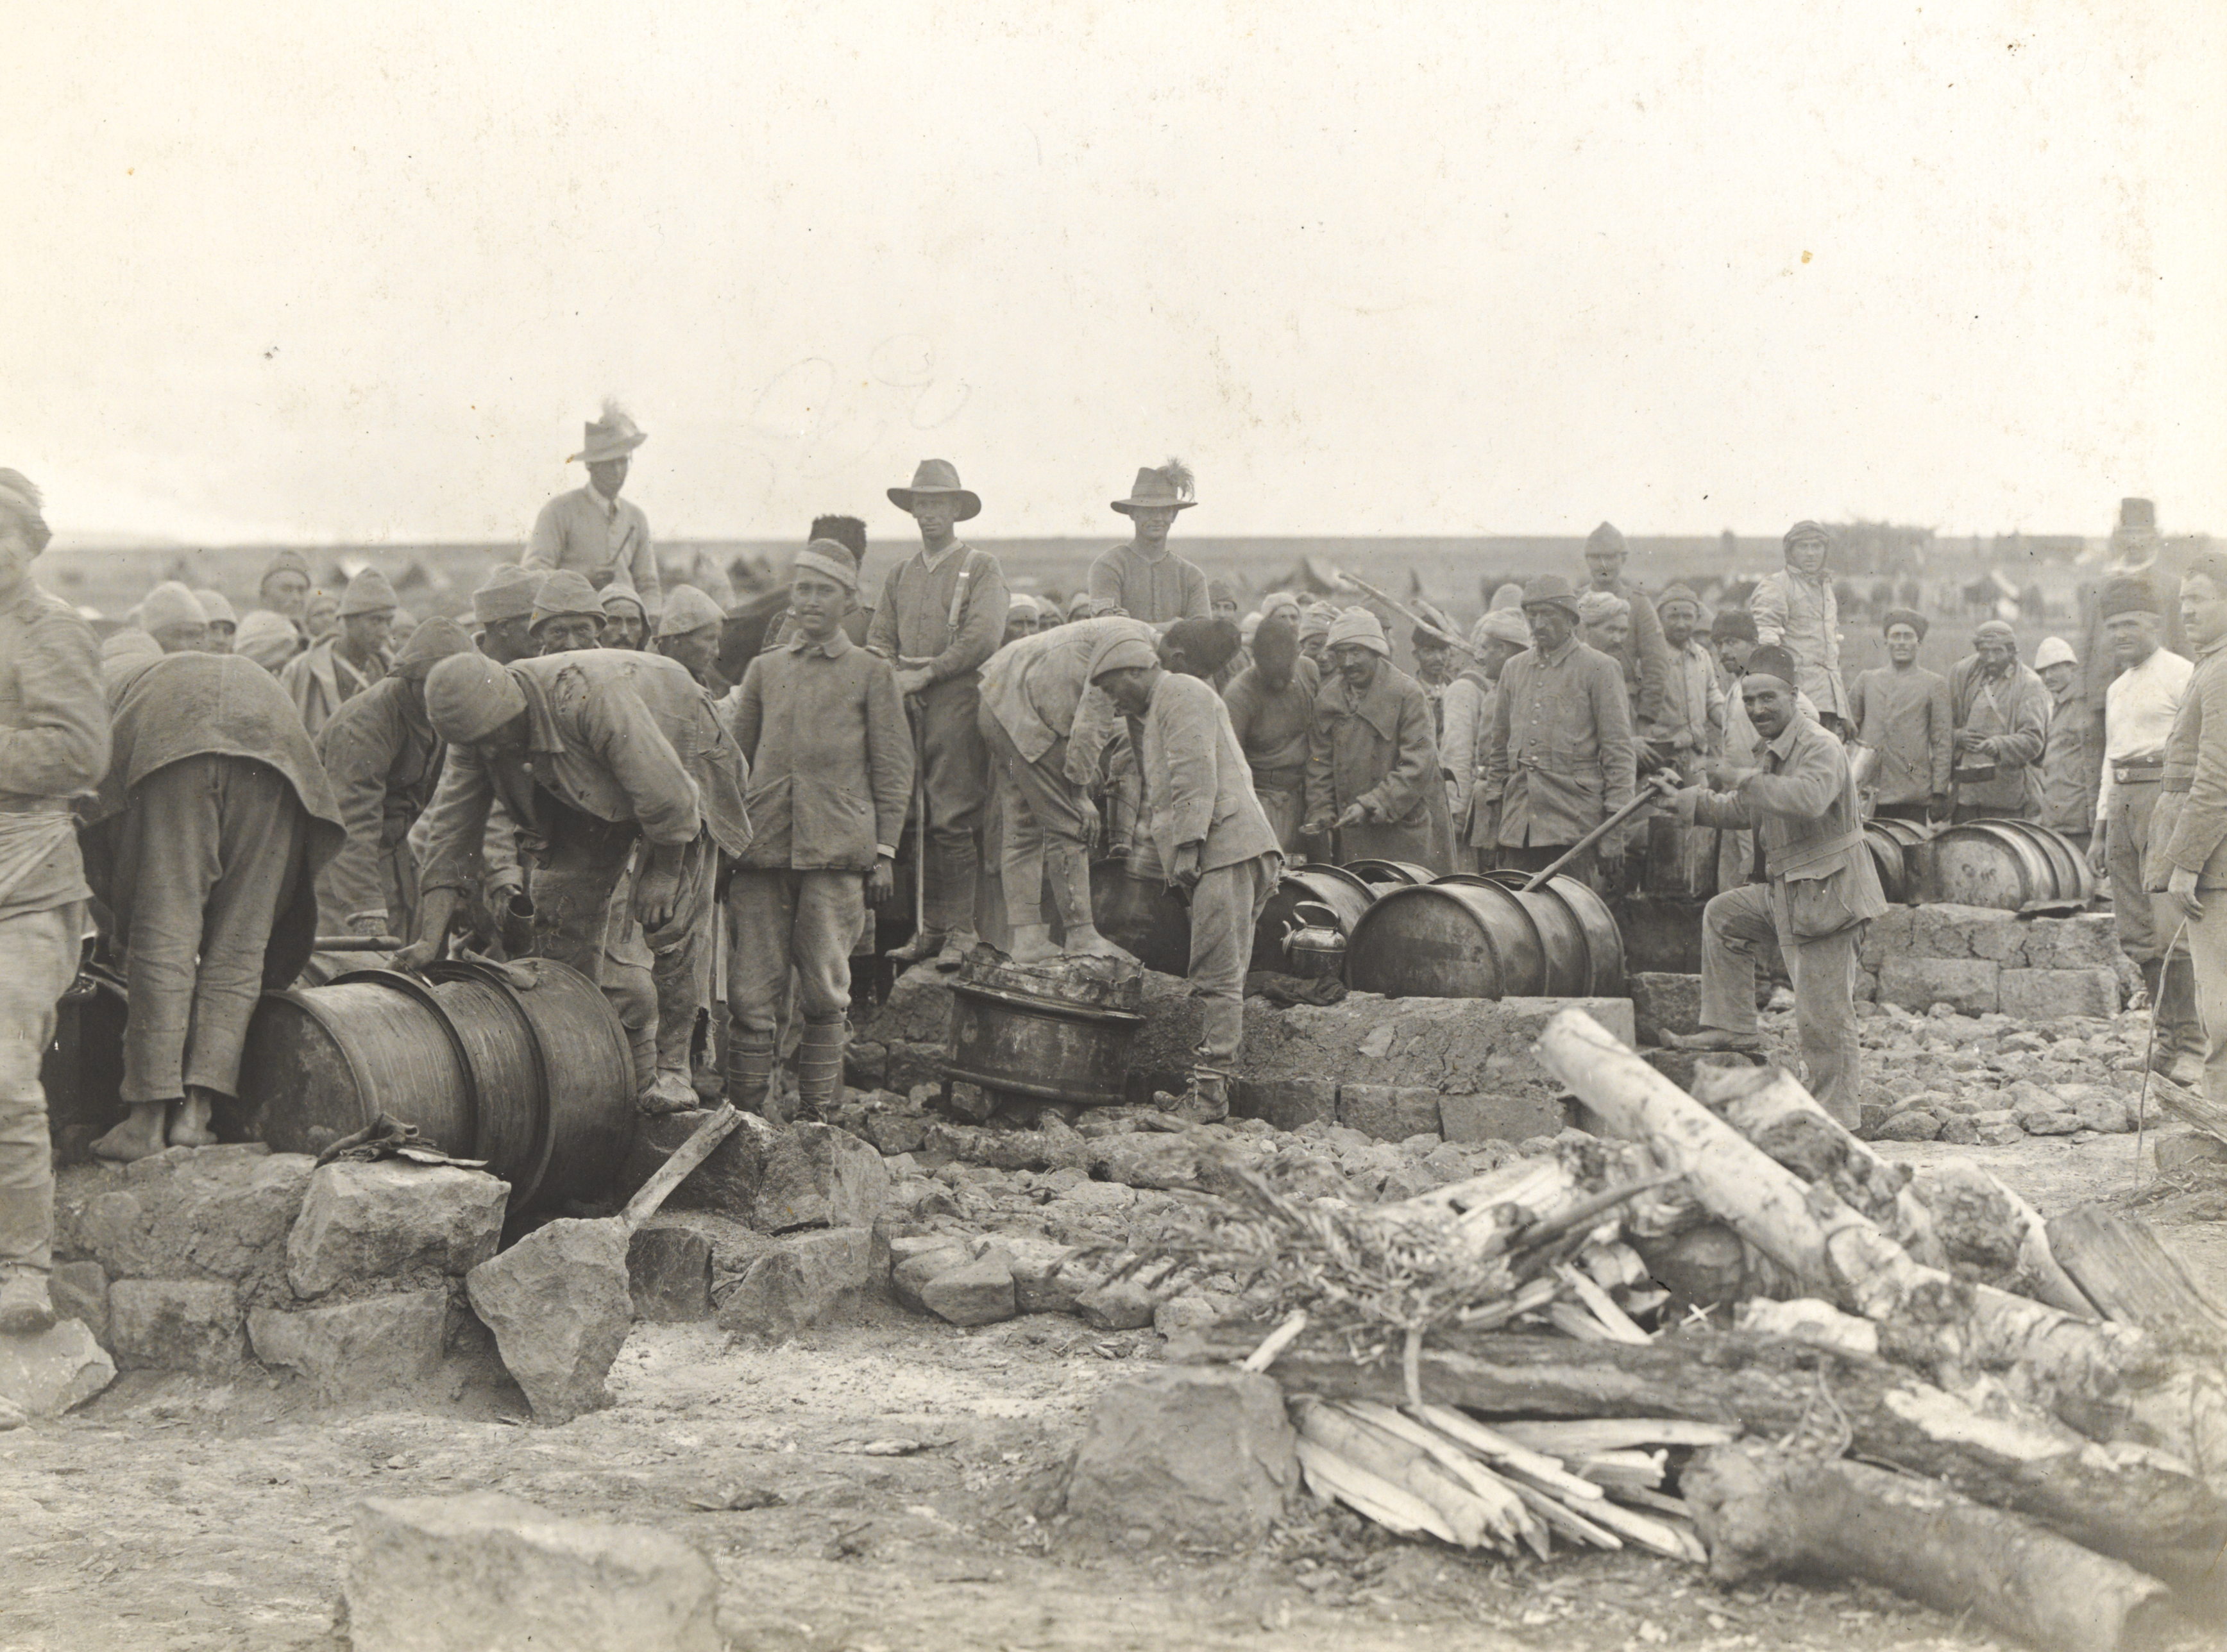 Feeding Turkish Prisoners of War, Australian Light Horse, attrib. Palestine, ca. 1916-1917, James Chauvel